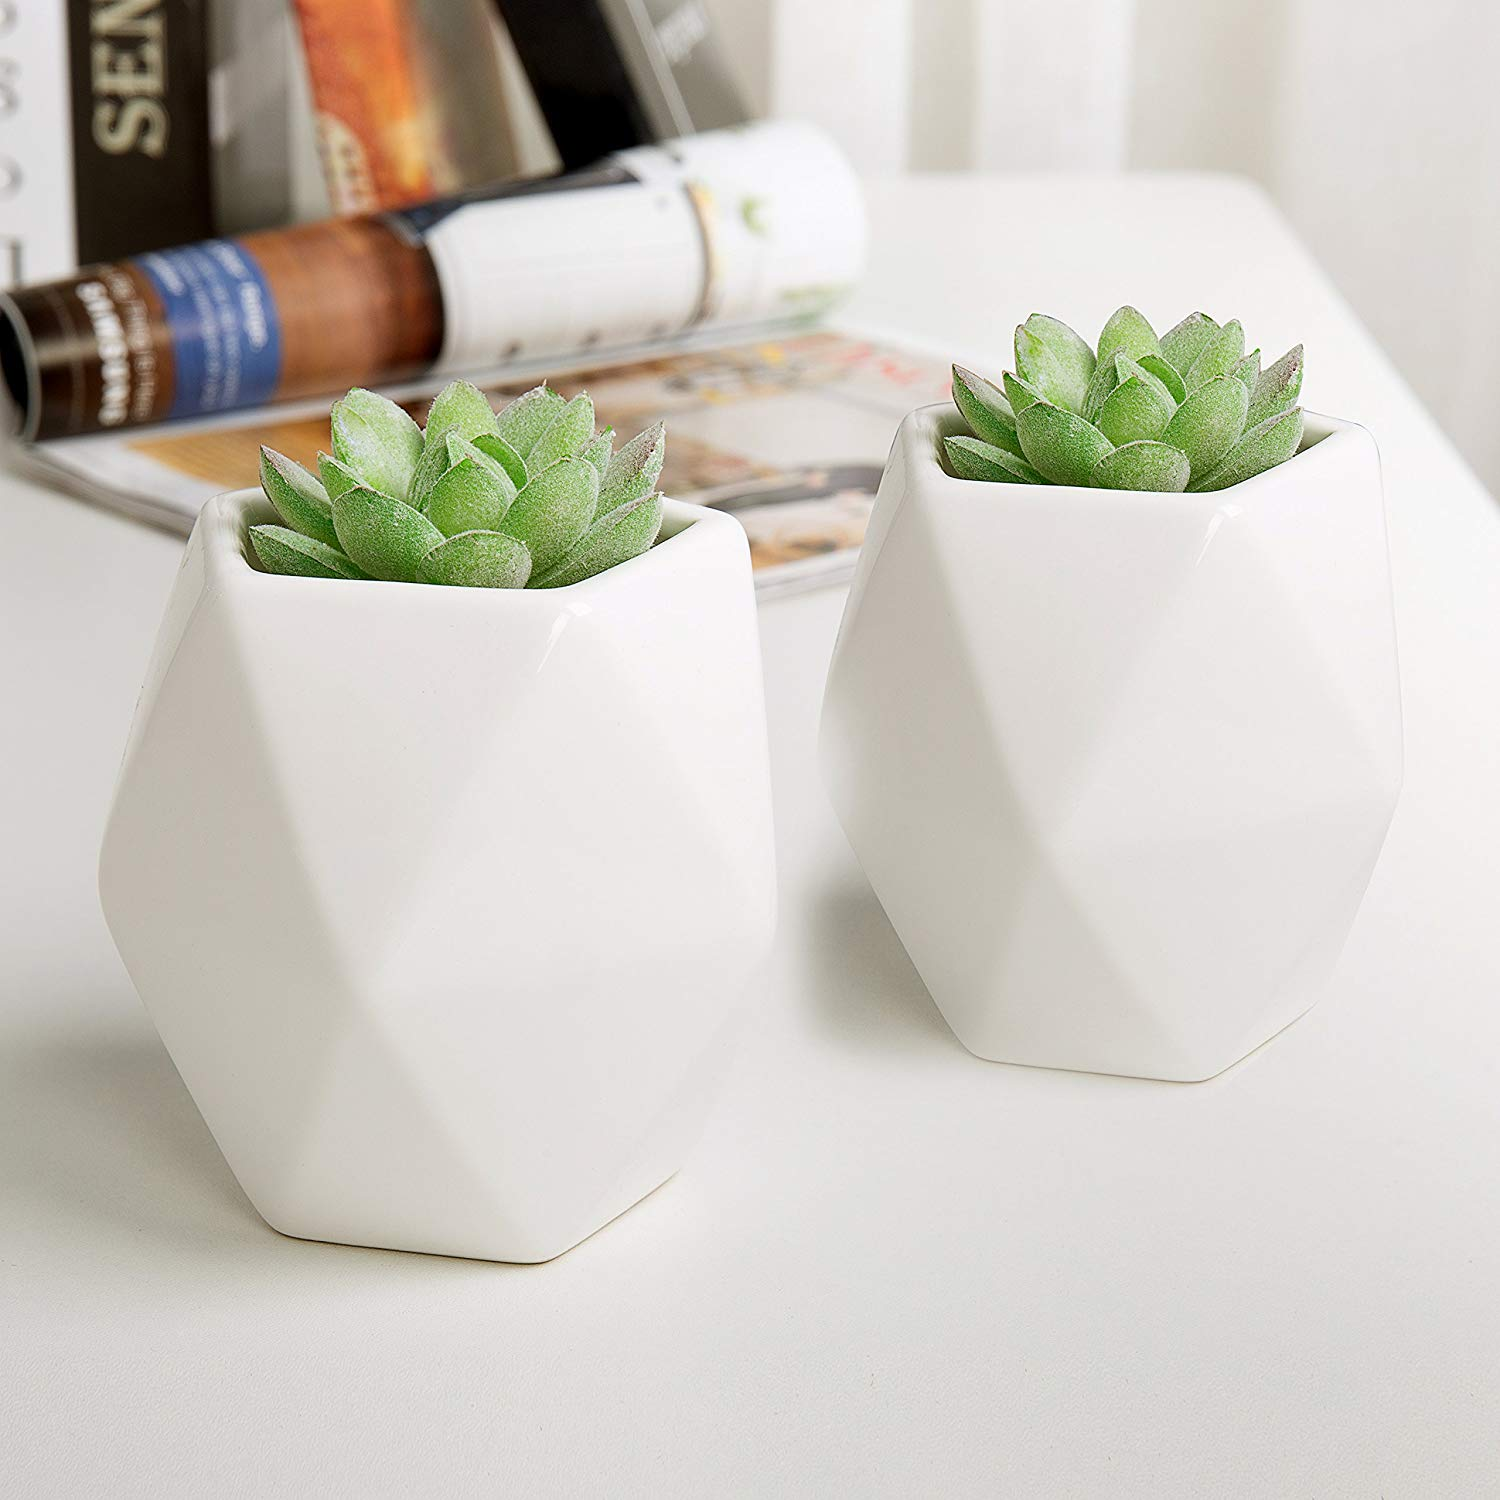 White Ceramic Wall Mounted Mini Succulent Planters, 4-inch Geometric Tabletop Plant Pots, Set of 2